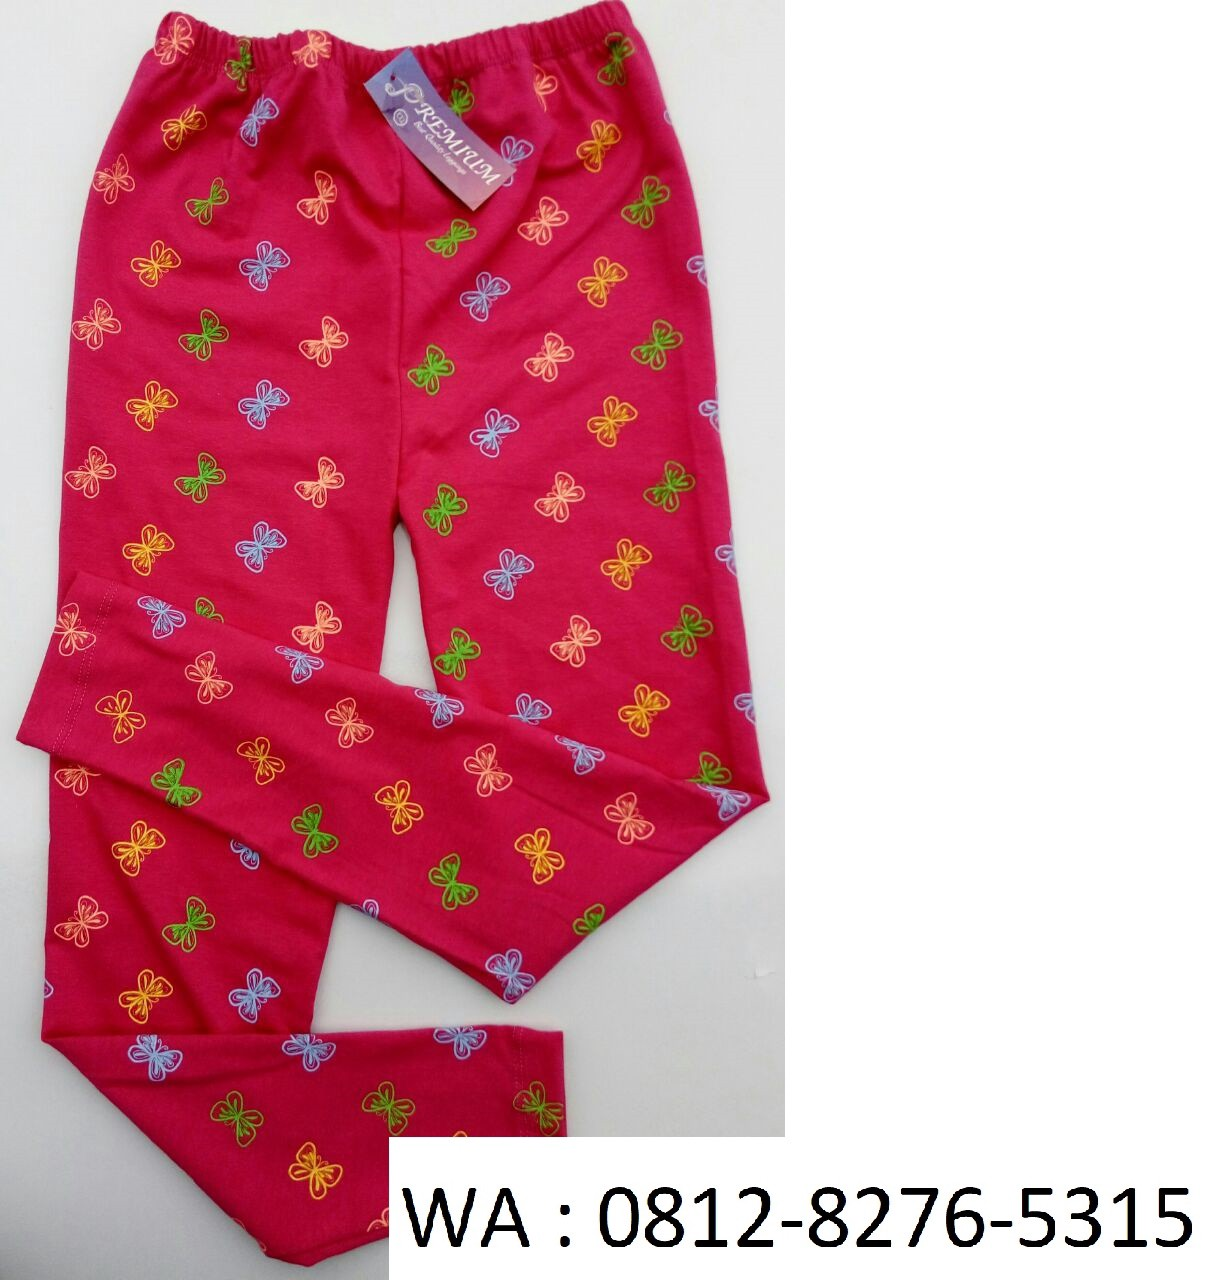 Free Ongkir Wa 0812 8276 5315 Legging Carter Bayi Laki Laki By Legging Baby1 Medium